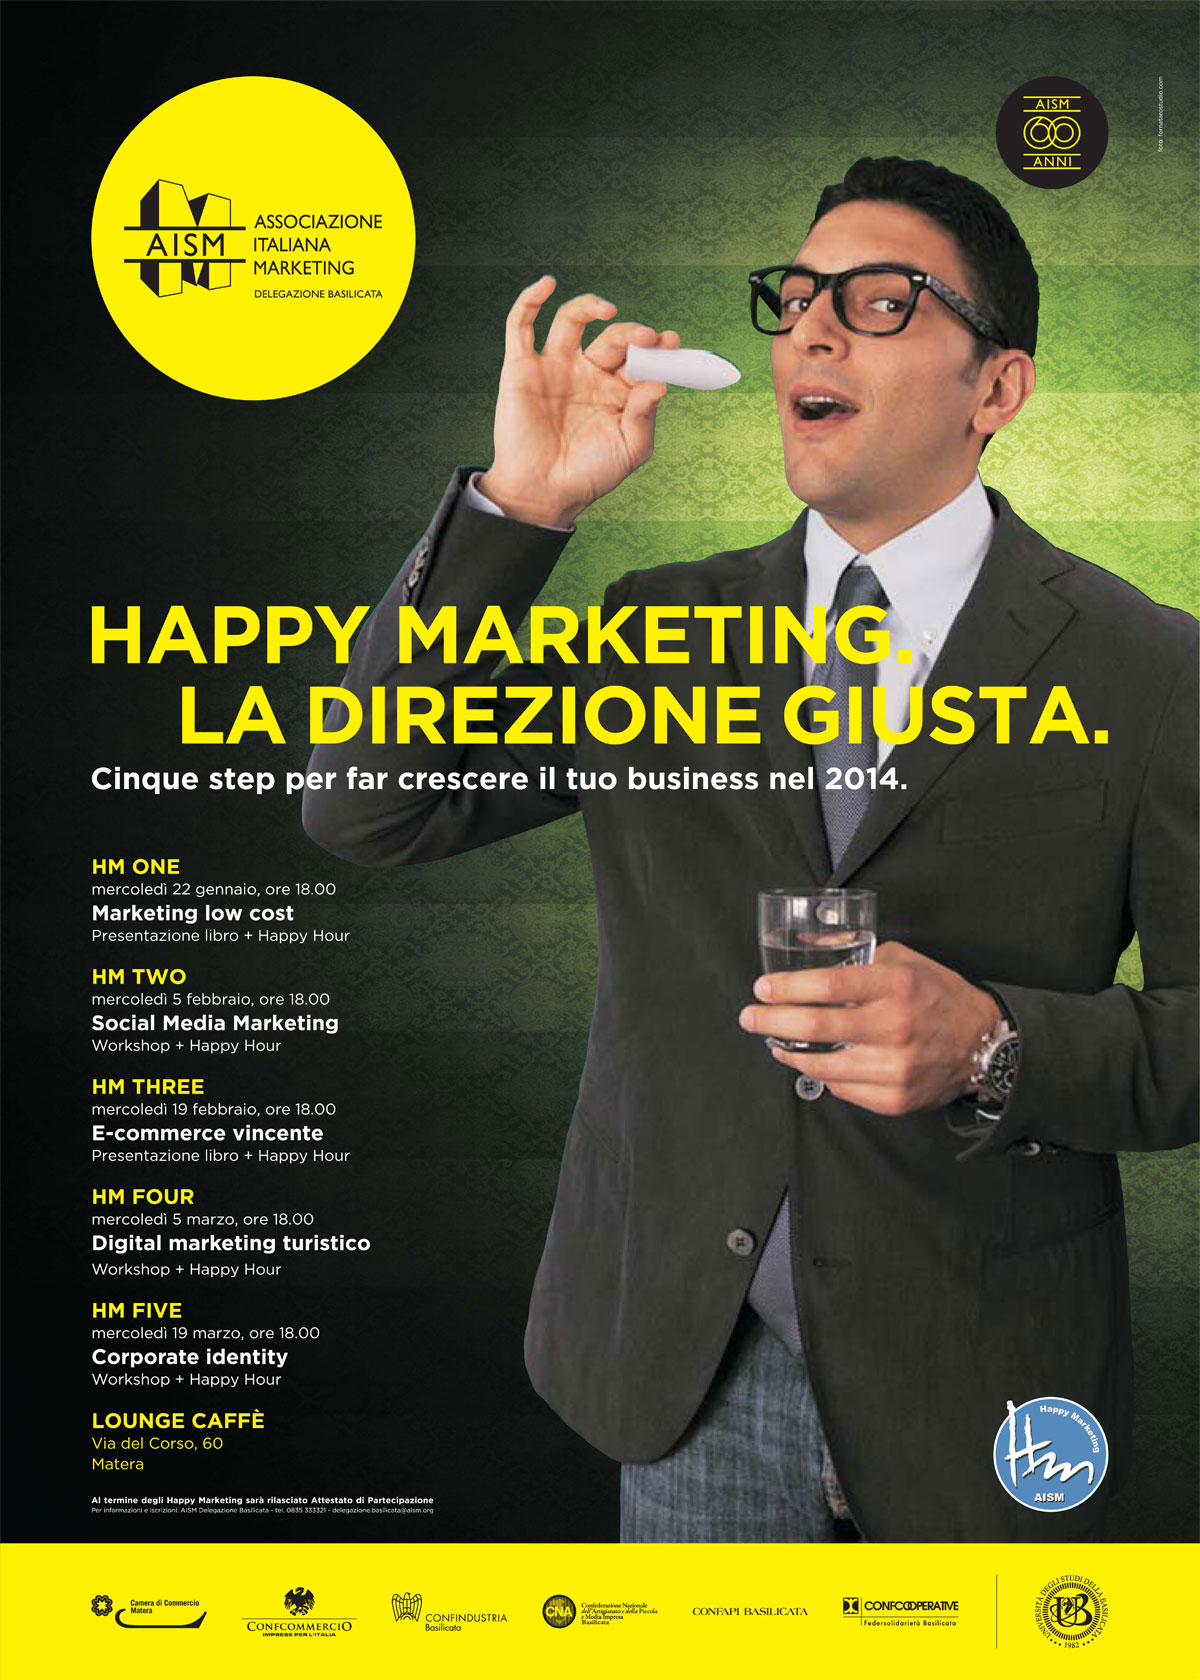 happy-marketing-la-direzione-giusta-officinae-agenzia-lean-digital-marketing-management-campagne-social-comunicazione-school-formazione-matera-milano